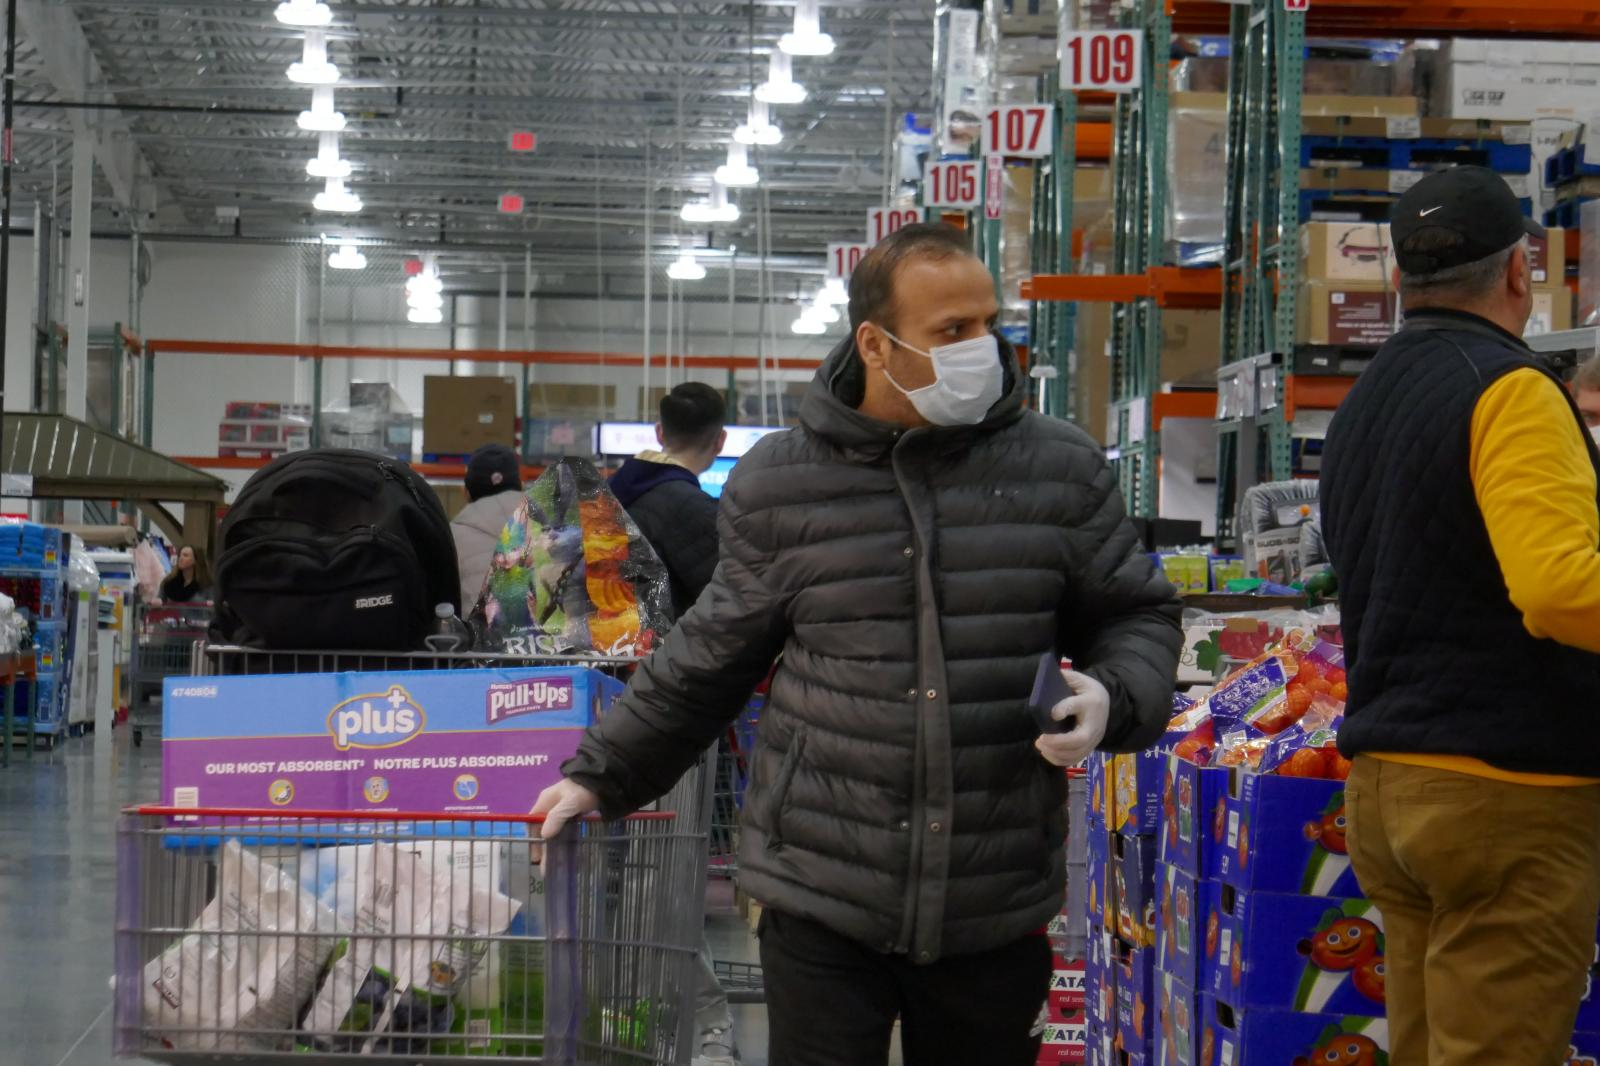 New York - MARCH 19, 2020 - A unidentified man is seen wearing a facial mask and gloves inside a Costco Store Thursday afternoon during the coronavirus pandemic. The coronavirus pandemic may have already thrust the economy into a recession as infections continue to surge, New York has ordered private business to cut on-site workforce by half. (Luiz C. Ribeiro for New York Daily News)